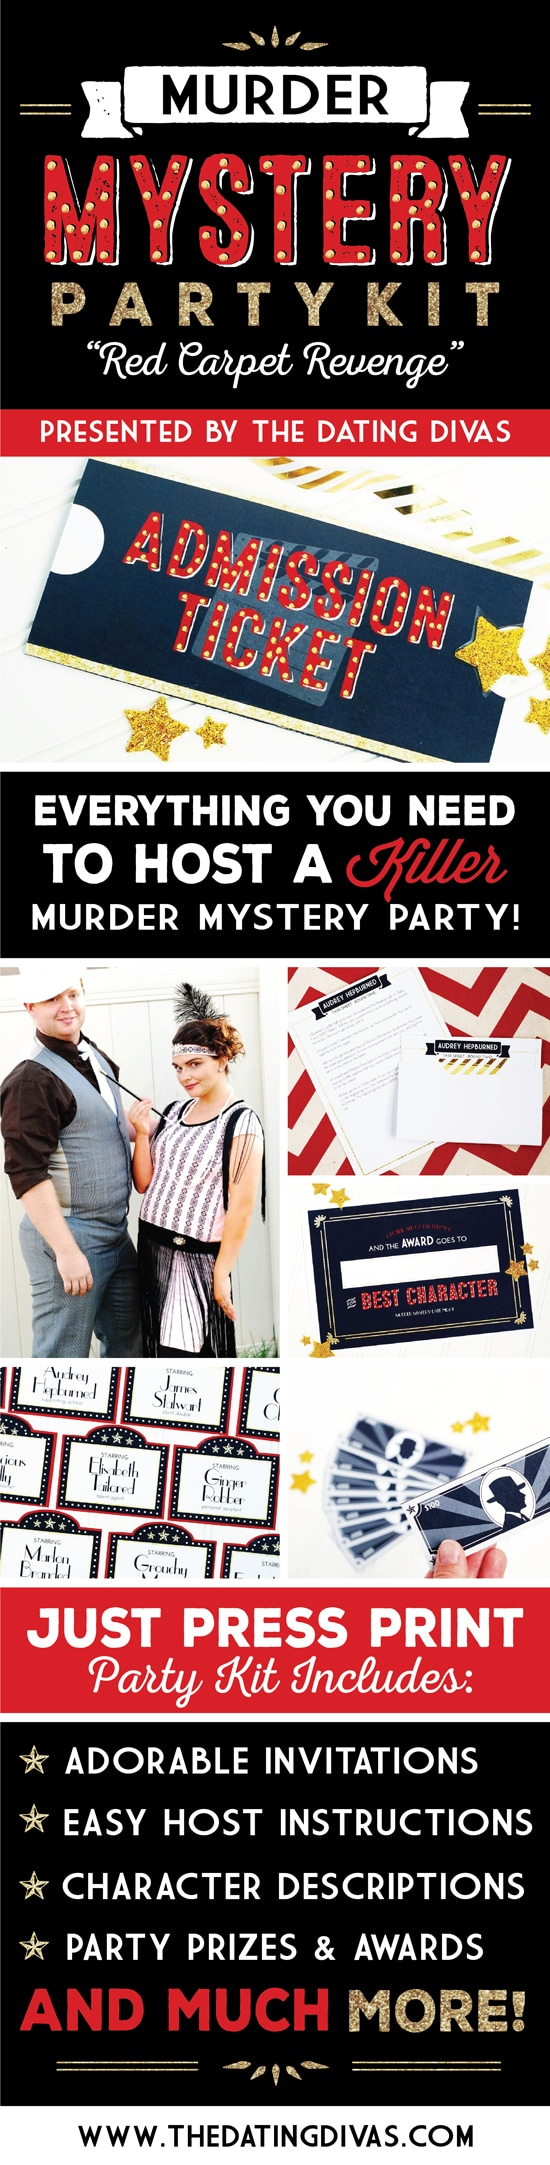 Seriously - the BEST Murder Mystery Party Kit I've ever used! Packed with TONS of Murdery Mystery Party ideas and darling designs, too! #murdermystery #murdermysterypartykit #howtohostamurderymysteryparty #thedatingdivas